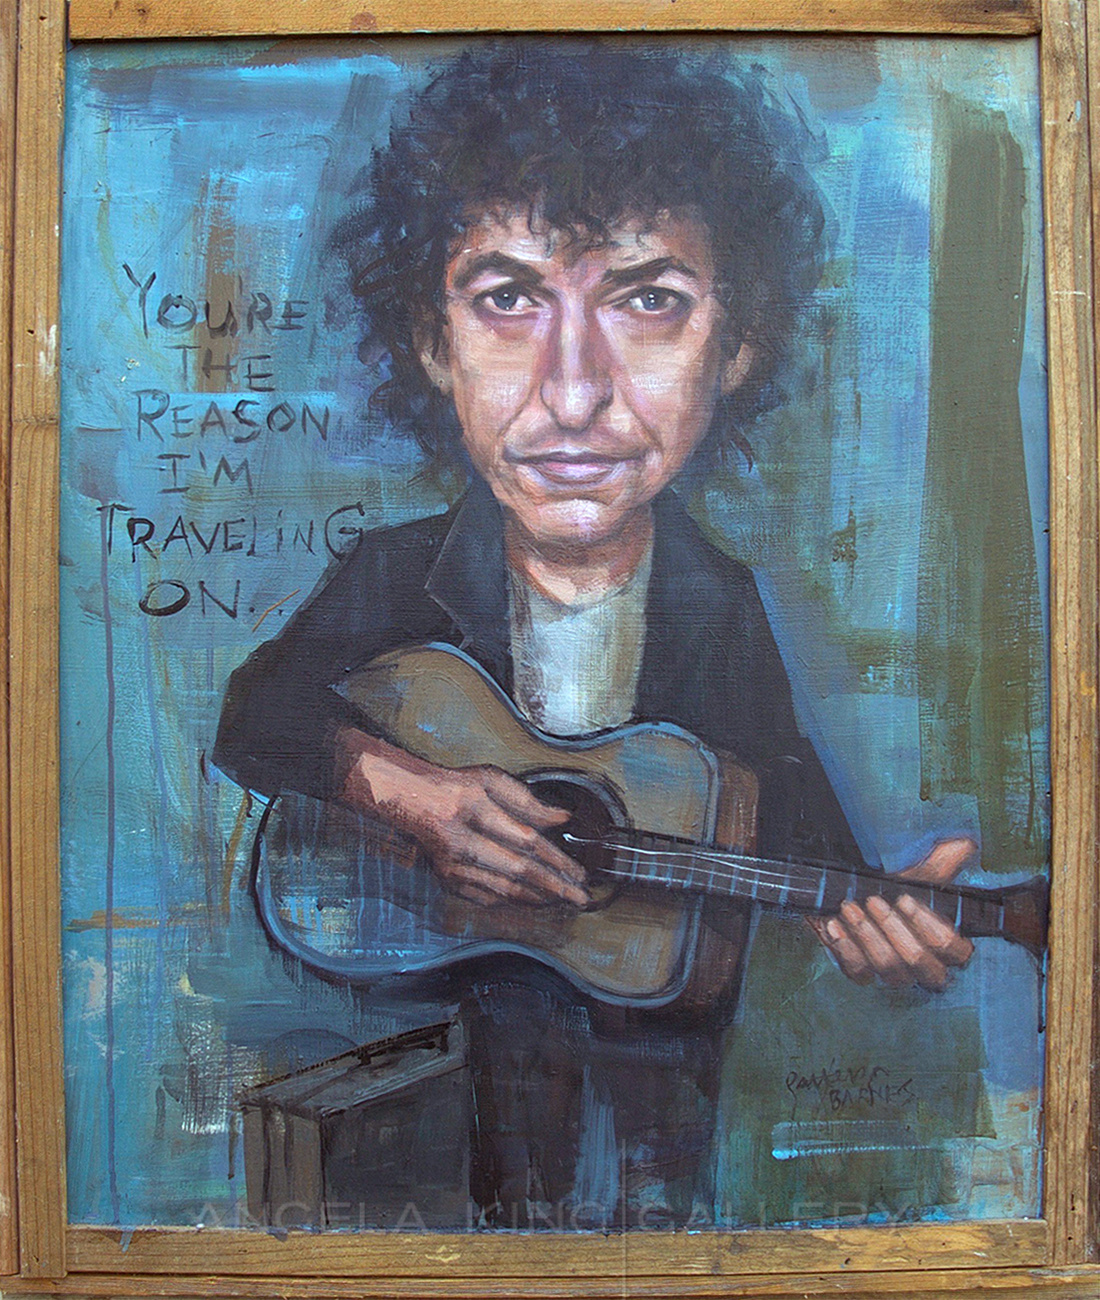 "Bob Dylan ""You're The Reason I'm Traveling On"""